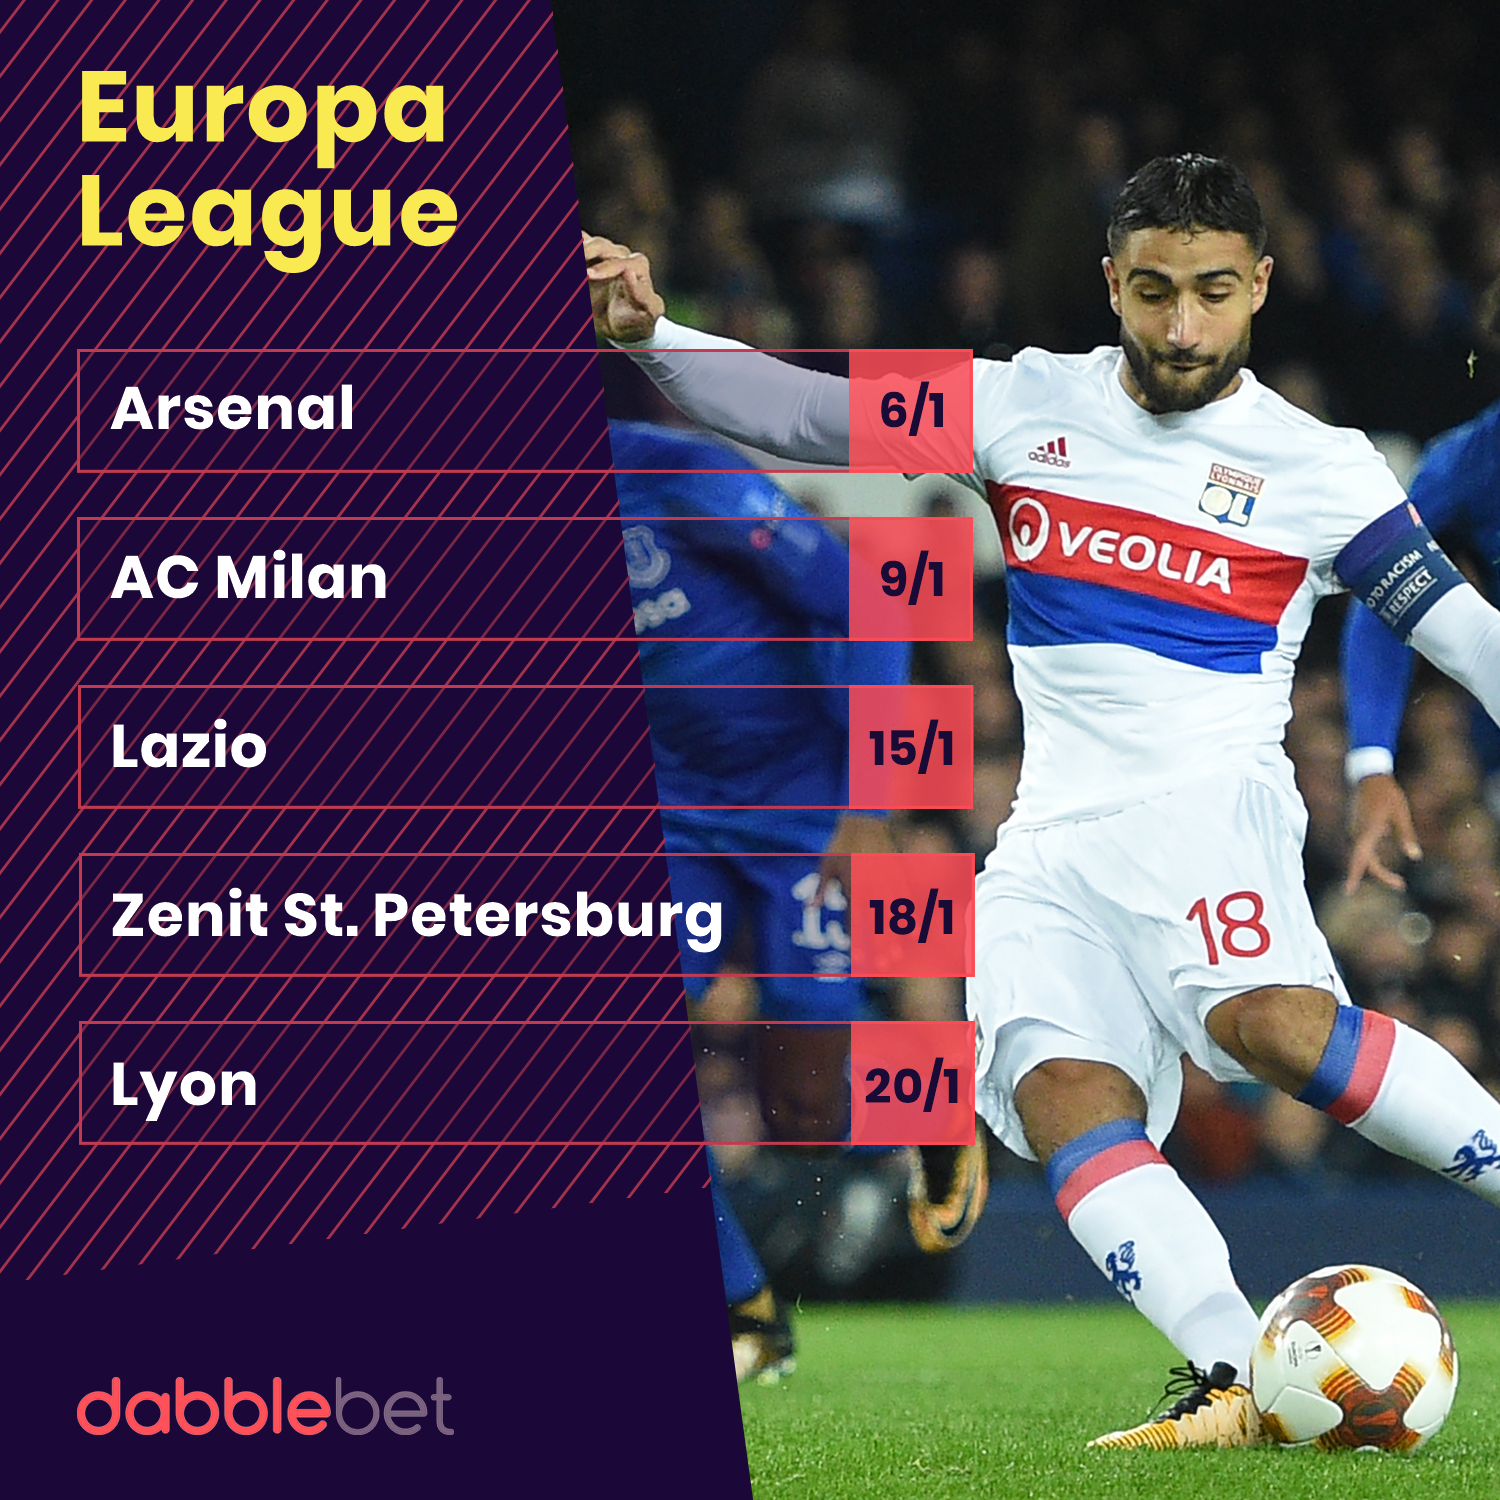 Europa League odds graphic